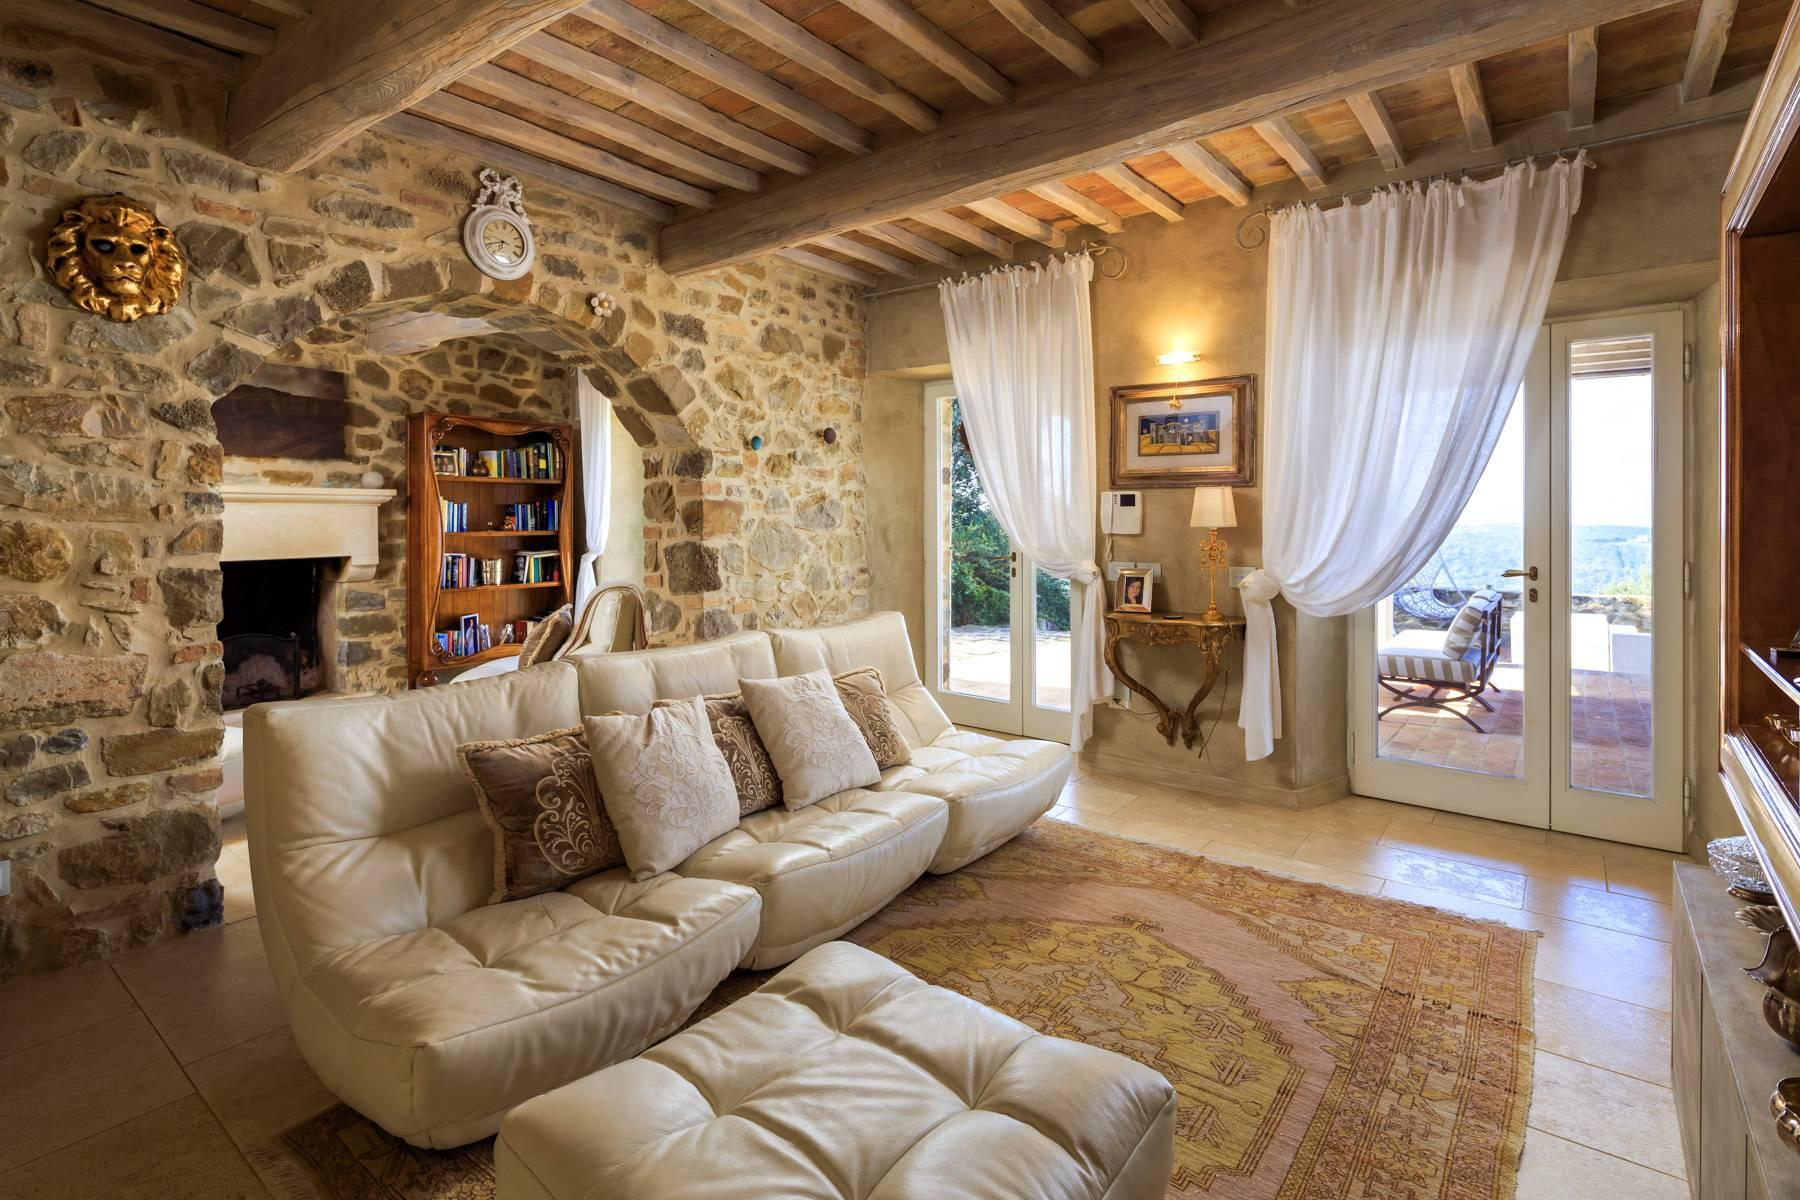 Marvelous newly restored farmhouse close to Montalcino - 12